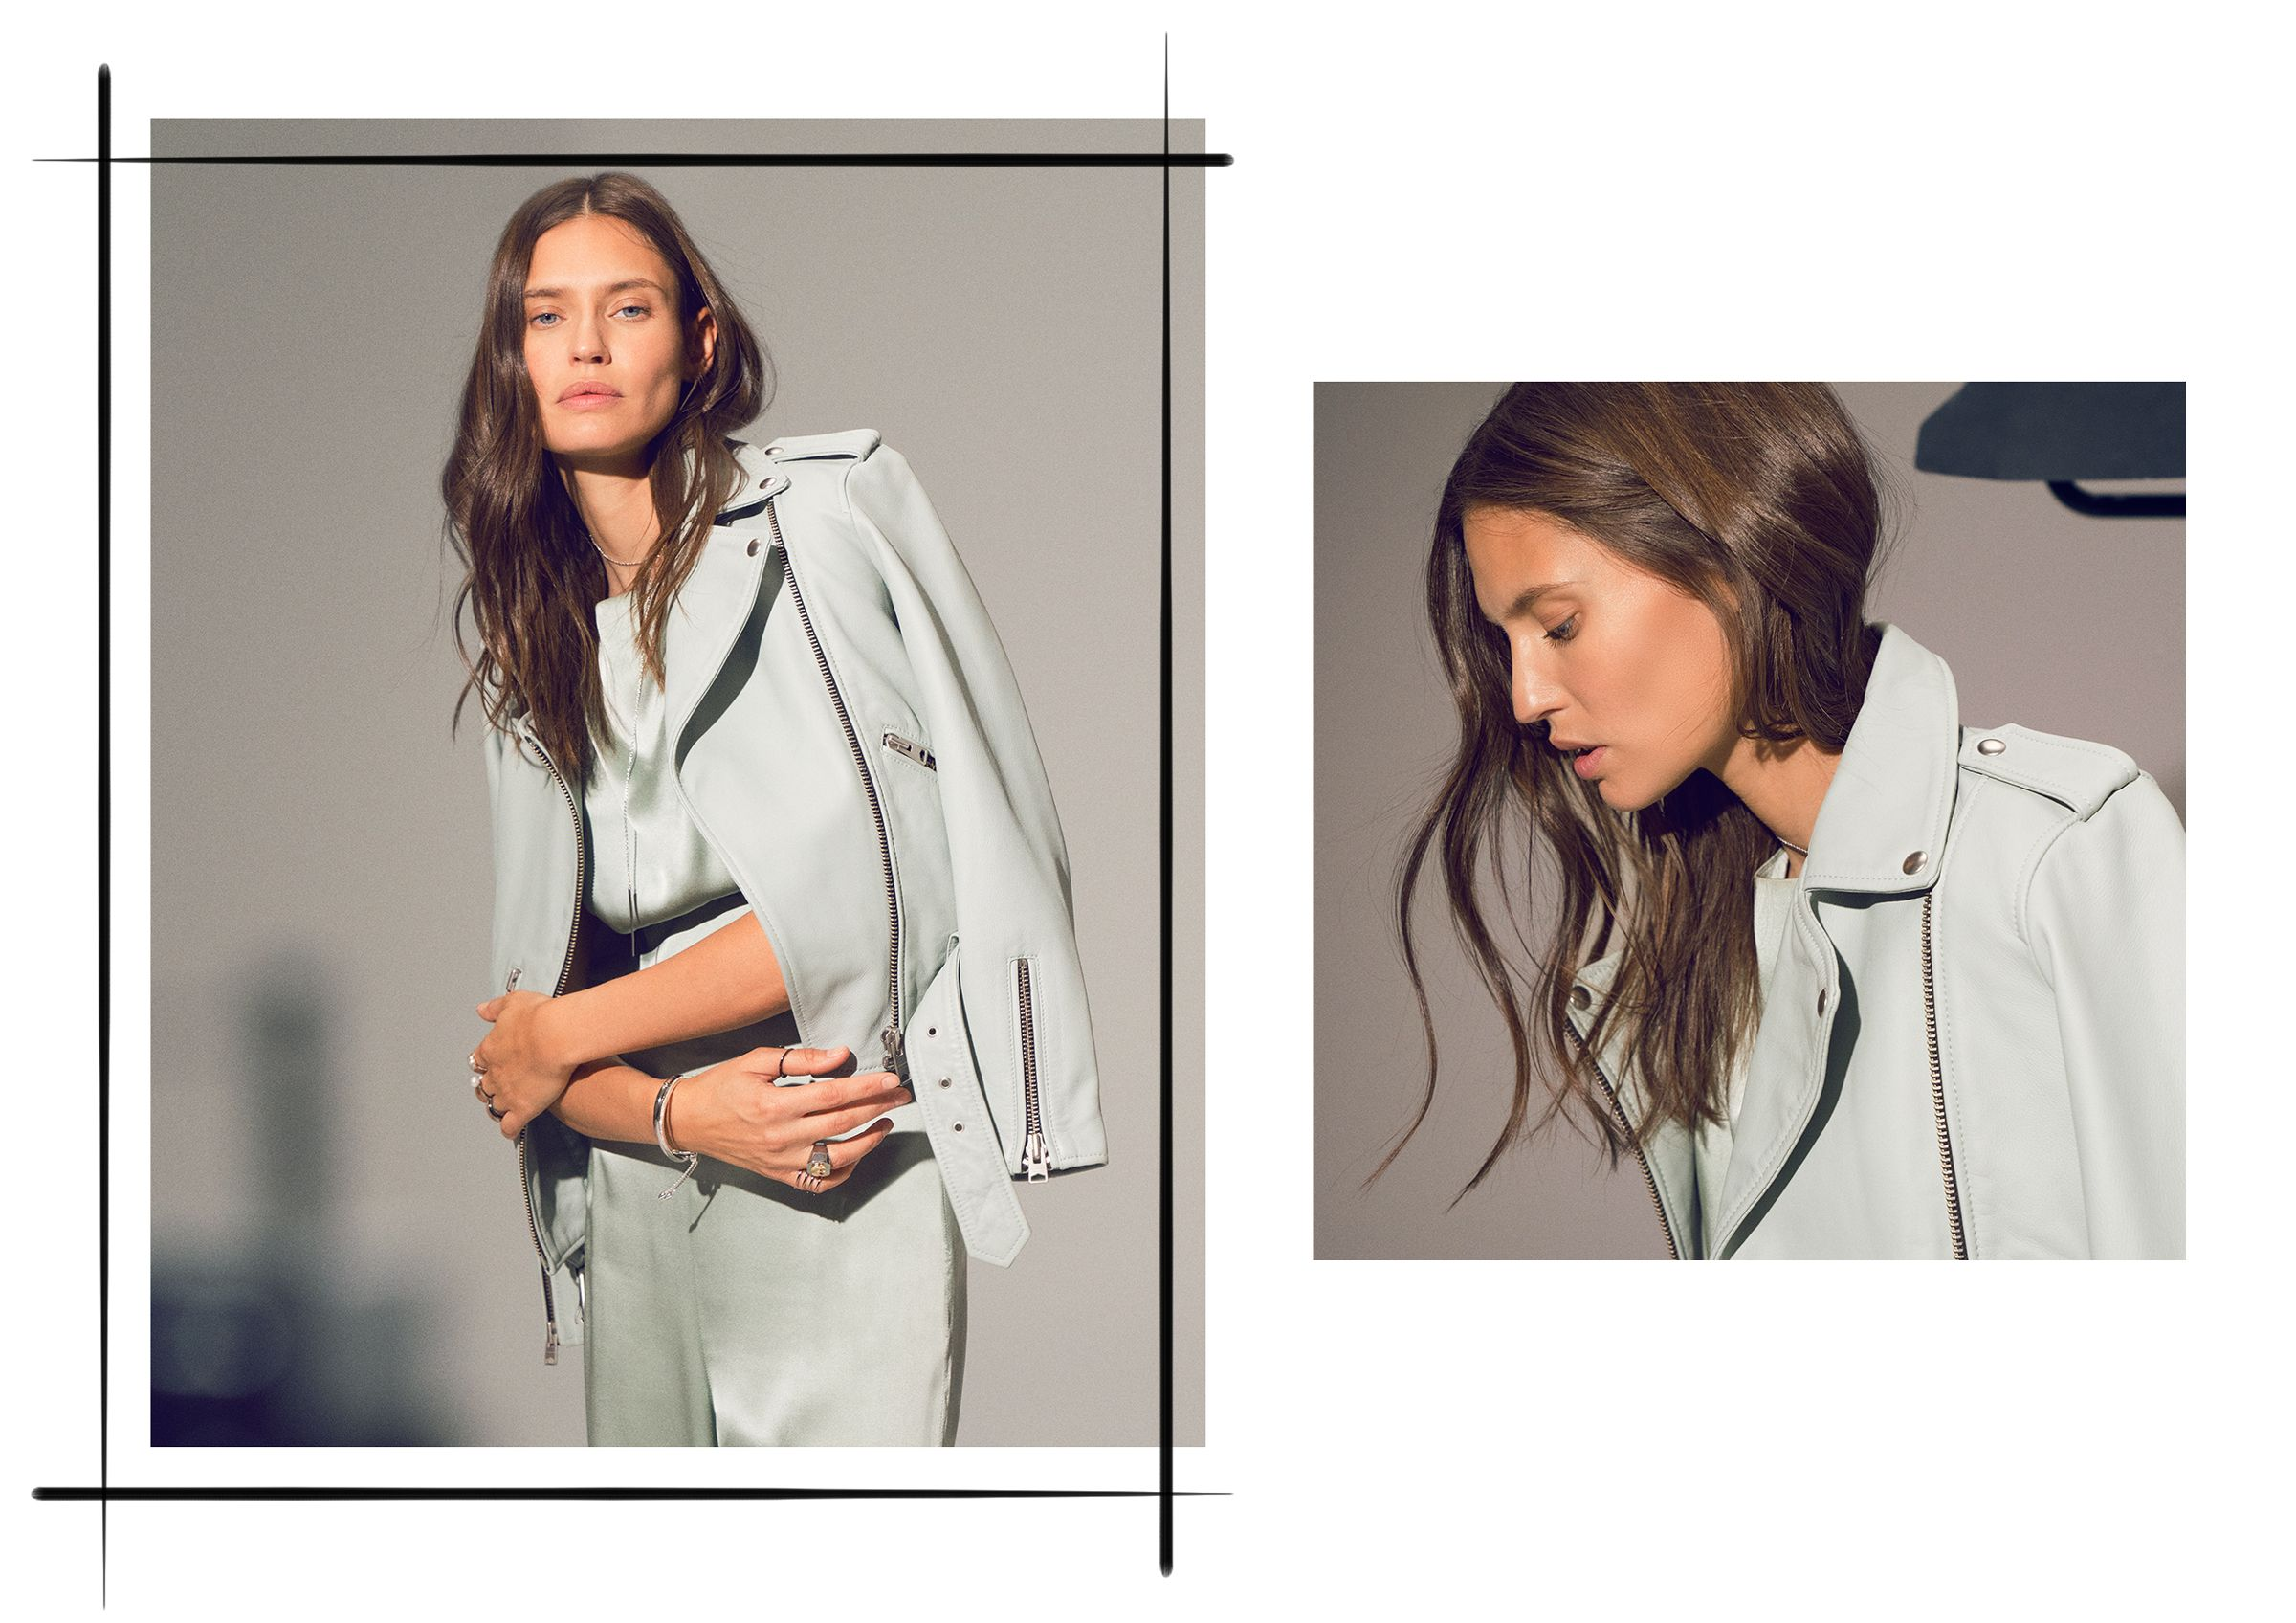 <p><strong>On Bianca Balti:</strong> All Saints leather jacket; Mola Walker top and pants; Amanda Pearl necklace, earrings, and rings; Urban Outfitters ring; Monica Vinader bracelet and ring; COS...